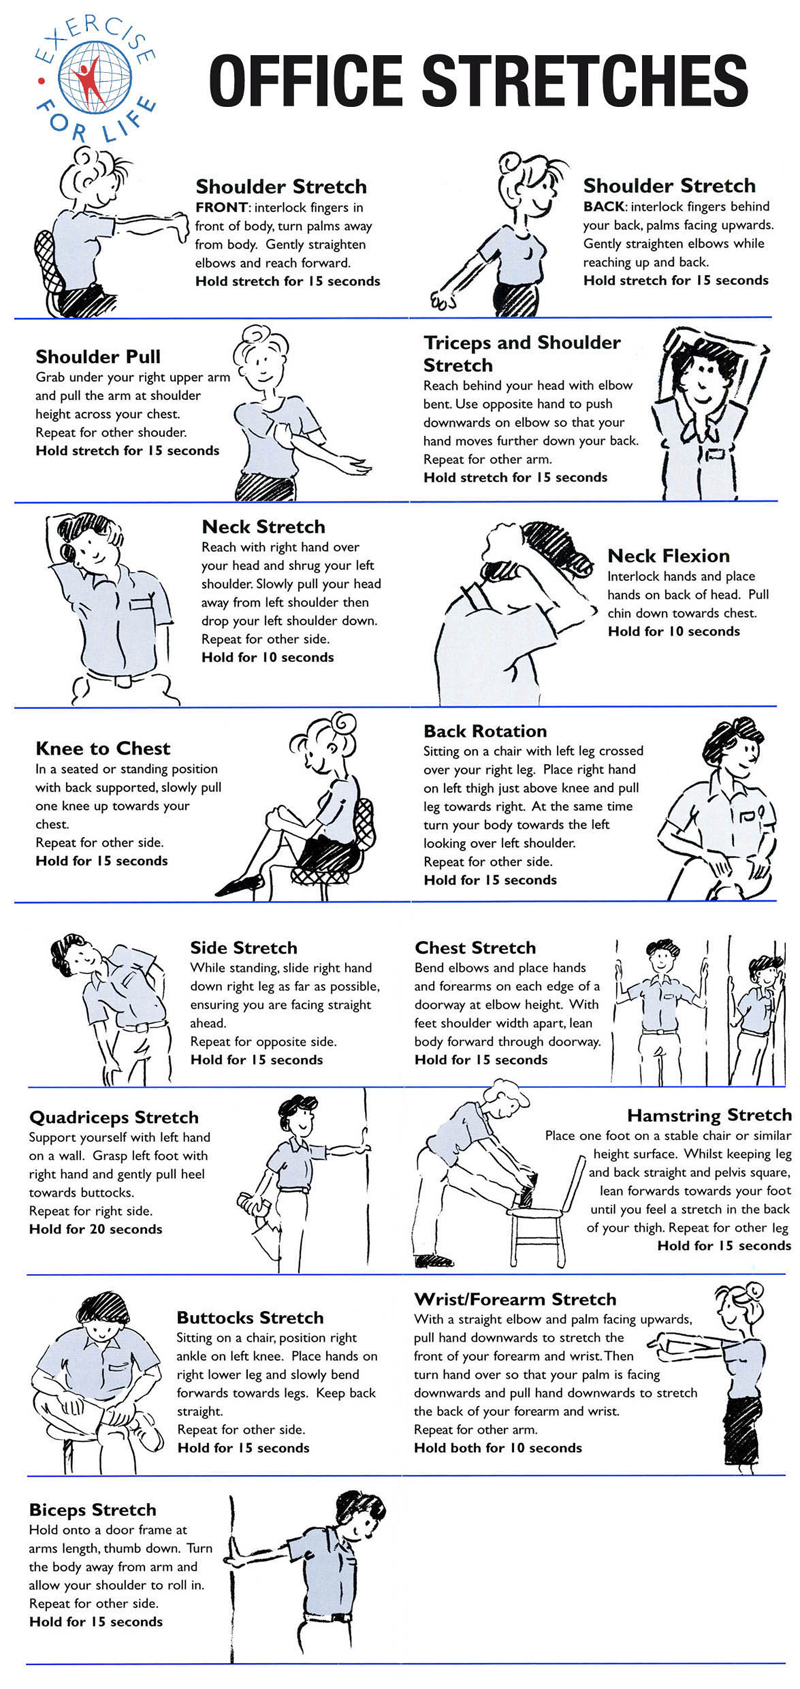 Office stretches to relieve tension, pain, and discomfort